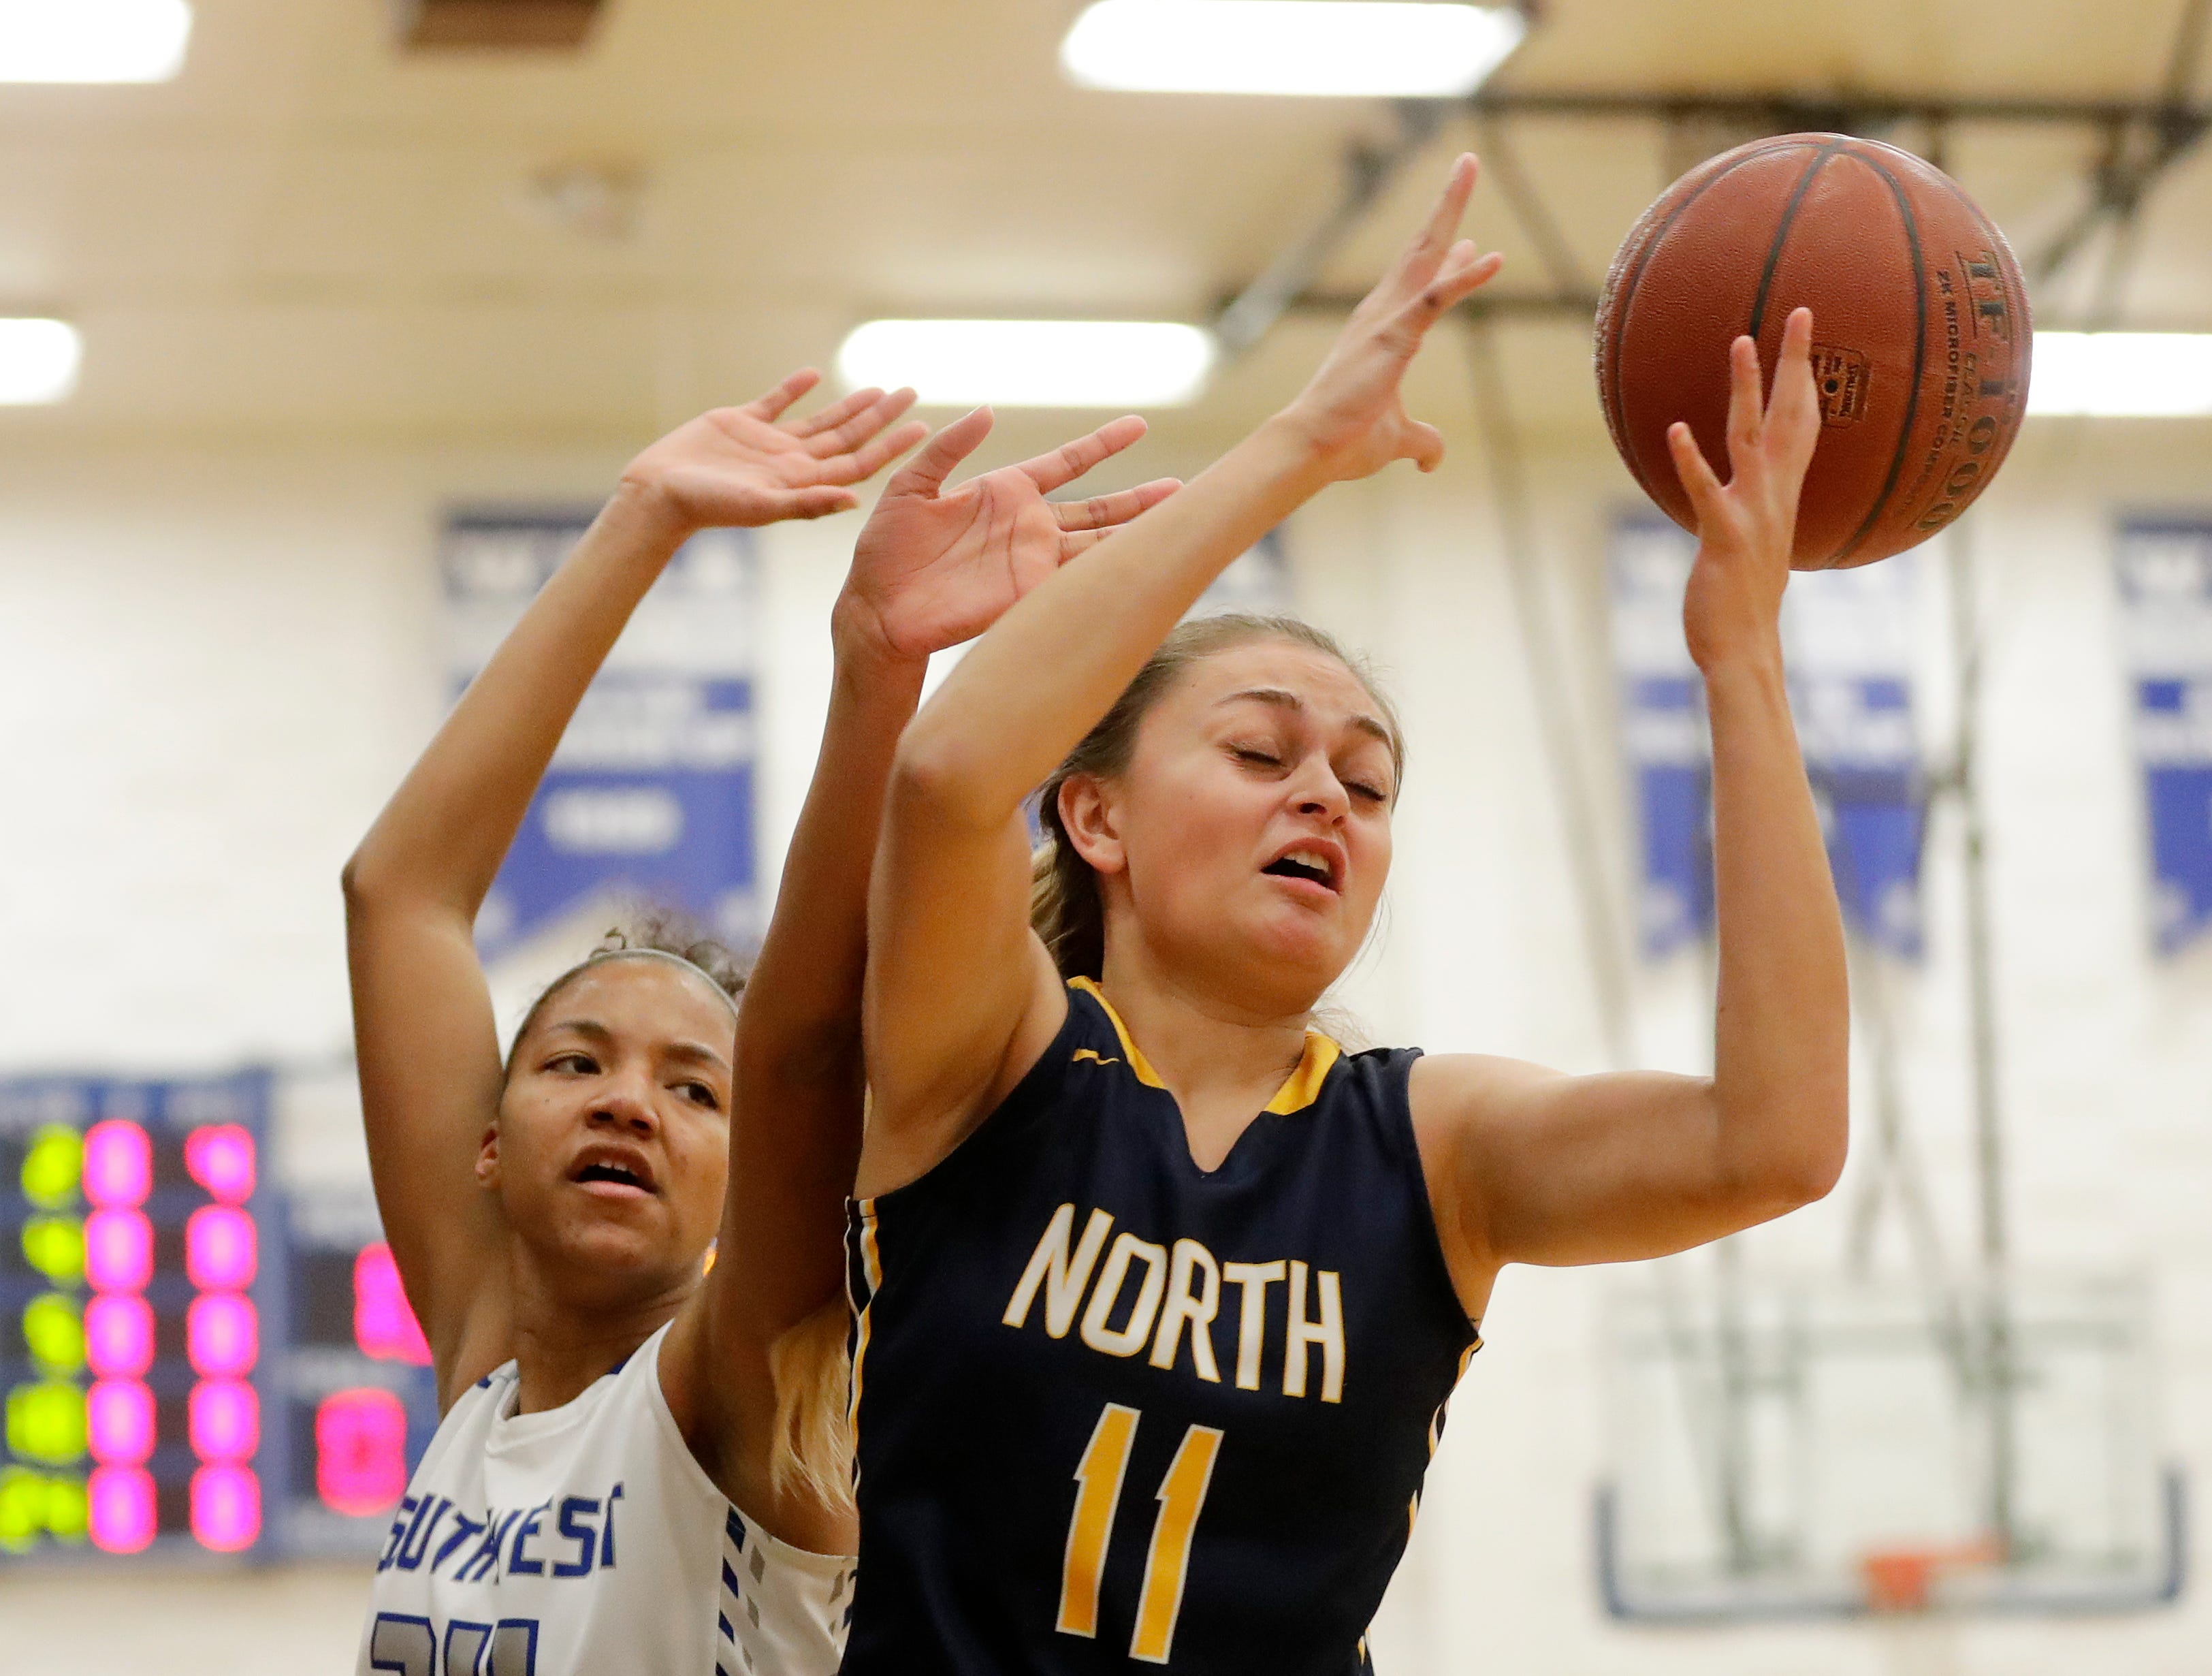 Green Bay Southwest's Jahzmeen Jackson (24) and Sheboygan North's Alycia Herr (11) compete for a loose ball in a girls basketball game at Southwest High School on Tuesday, February 5, 2019 in Green Bay, Wis.